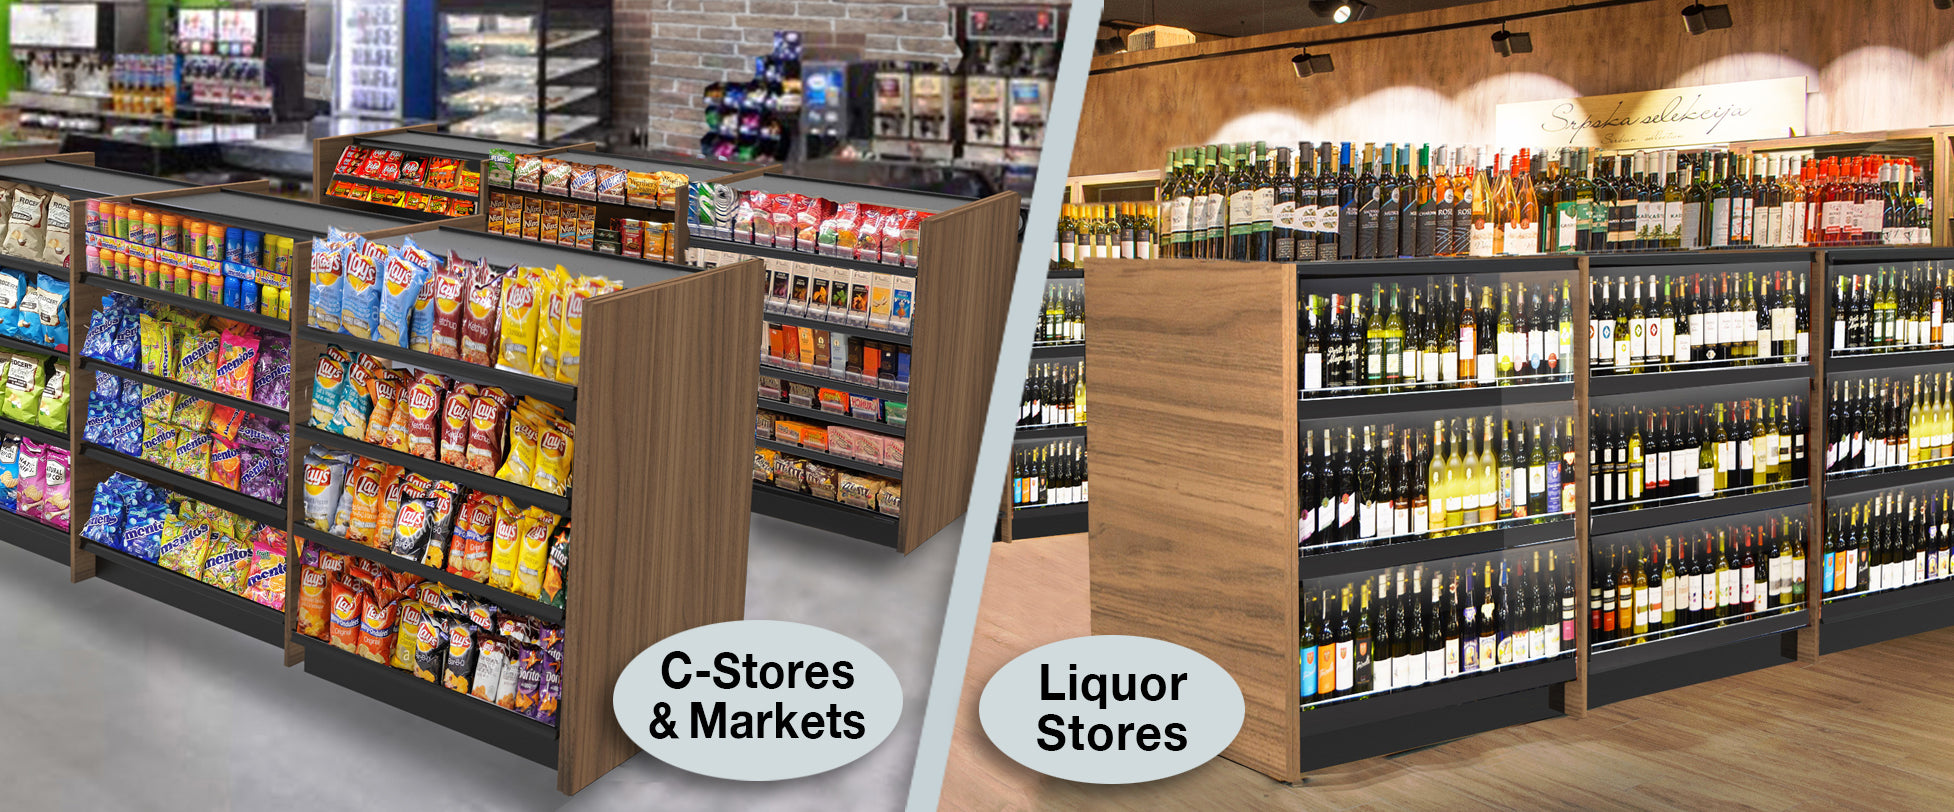 shelving for liquor stores, wine storage and display for liquor stores and supermarkets